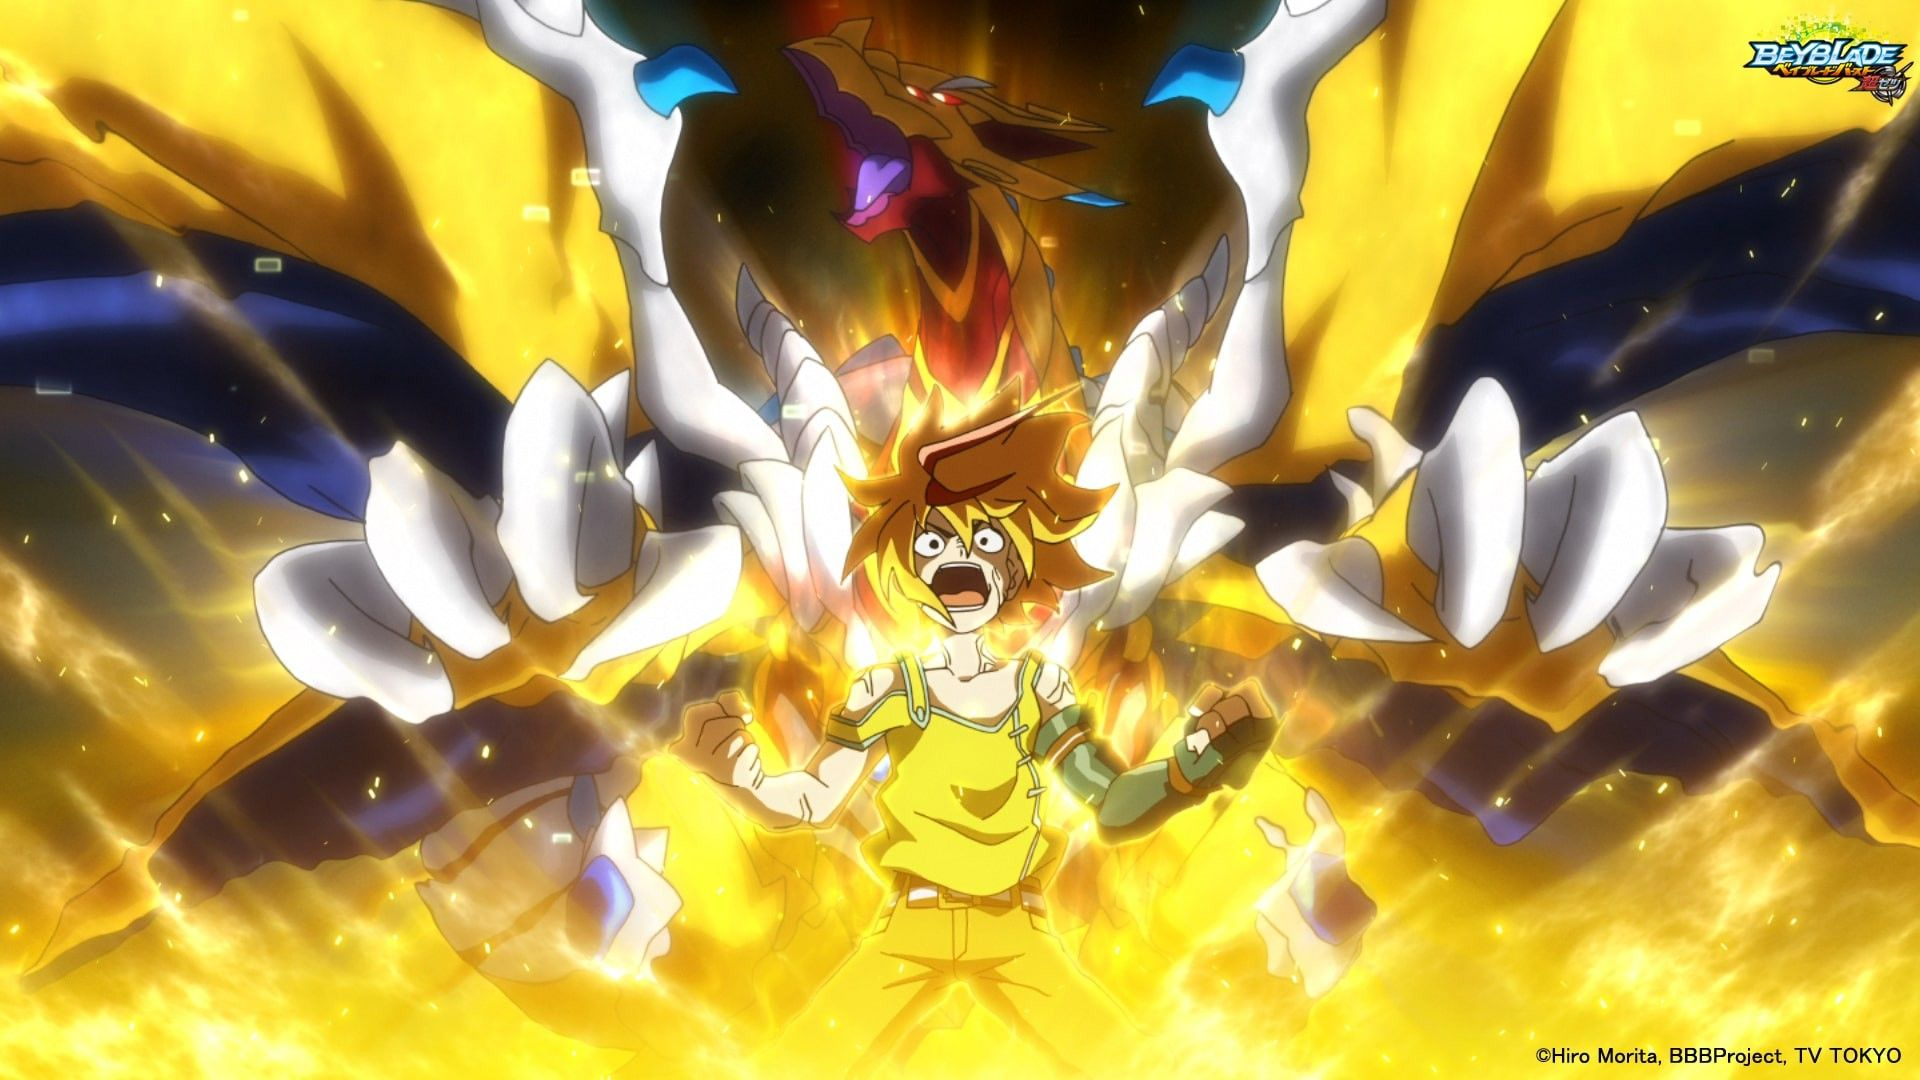 The Avatar Of Geist Fafnir Appears Behind Free Elementary Art Projects Anime Galaxy Beyblade Characters